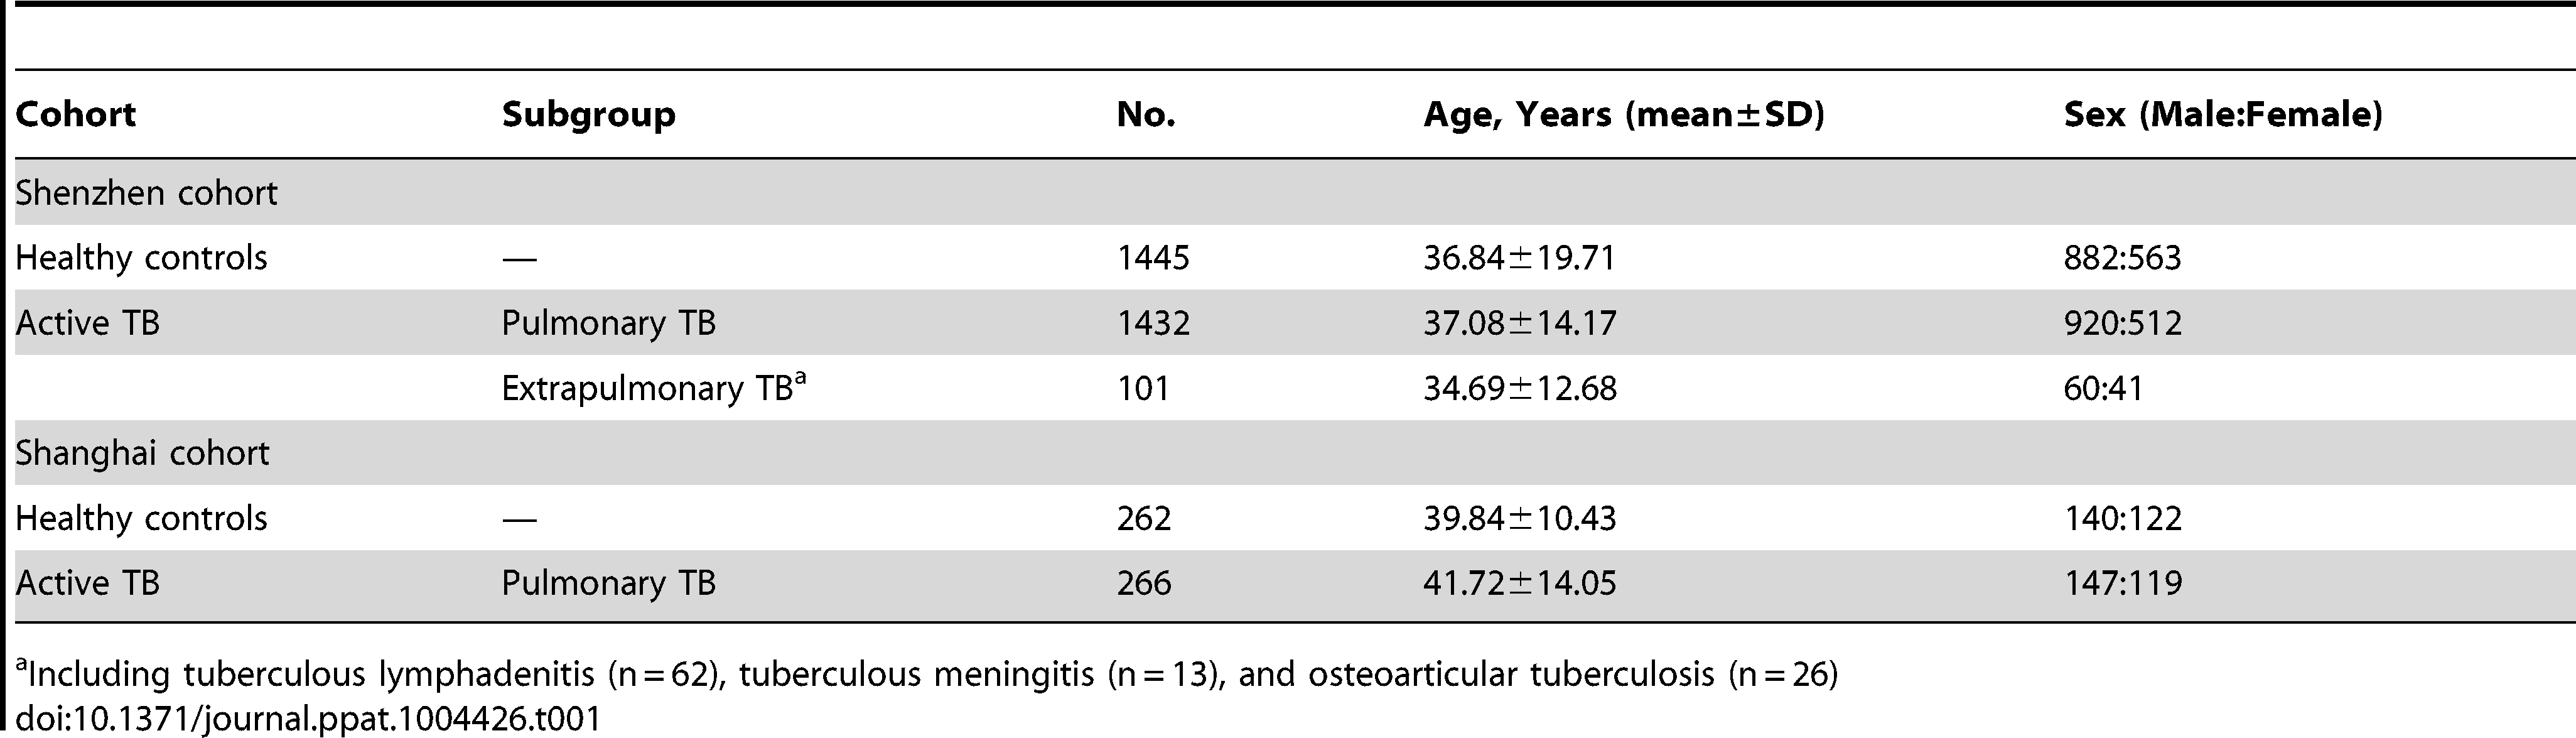 Characteristics of patients with active TB and healthy controls in multiple cohorts.